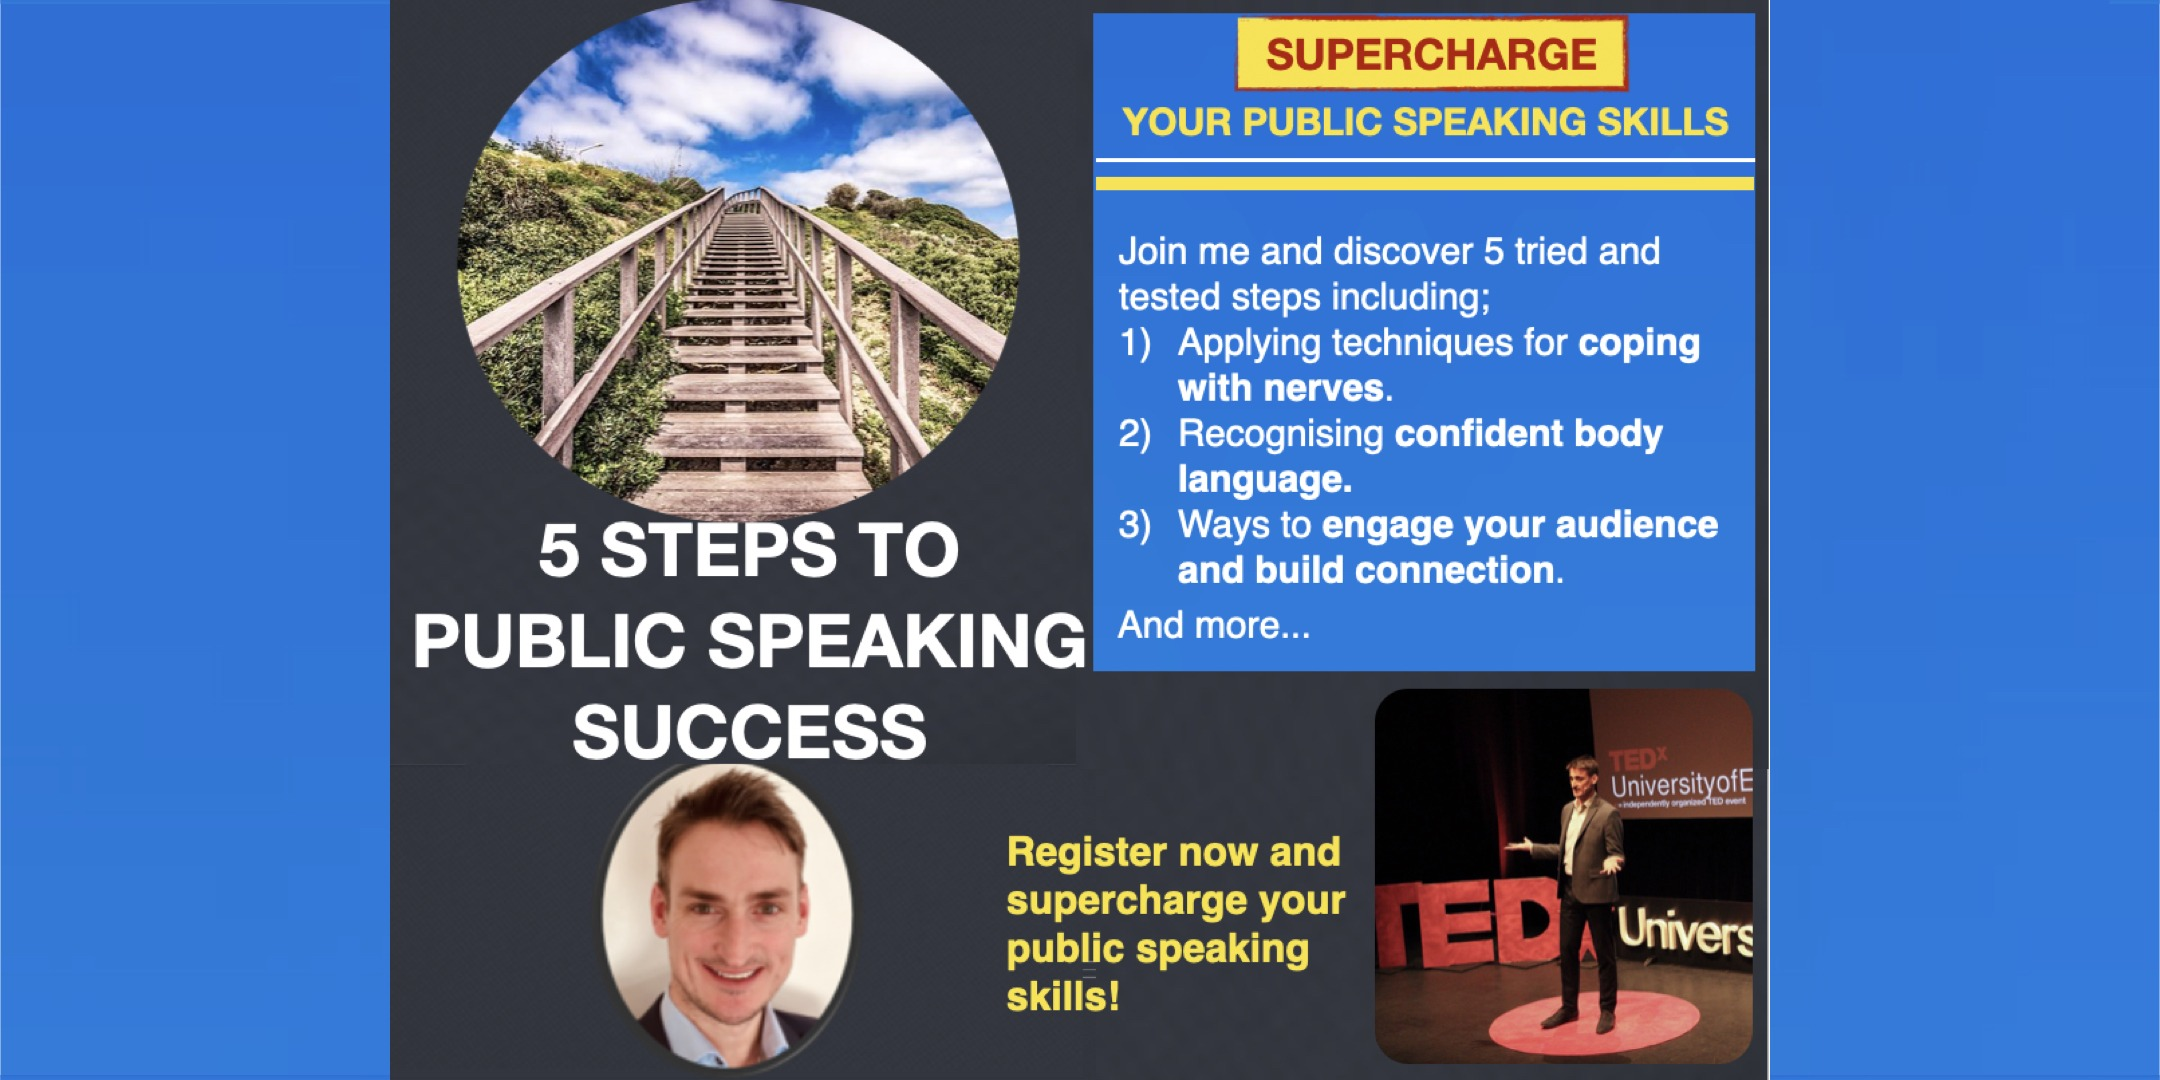 5 Steps to Public Speaking Success